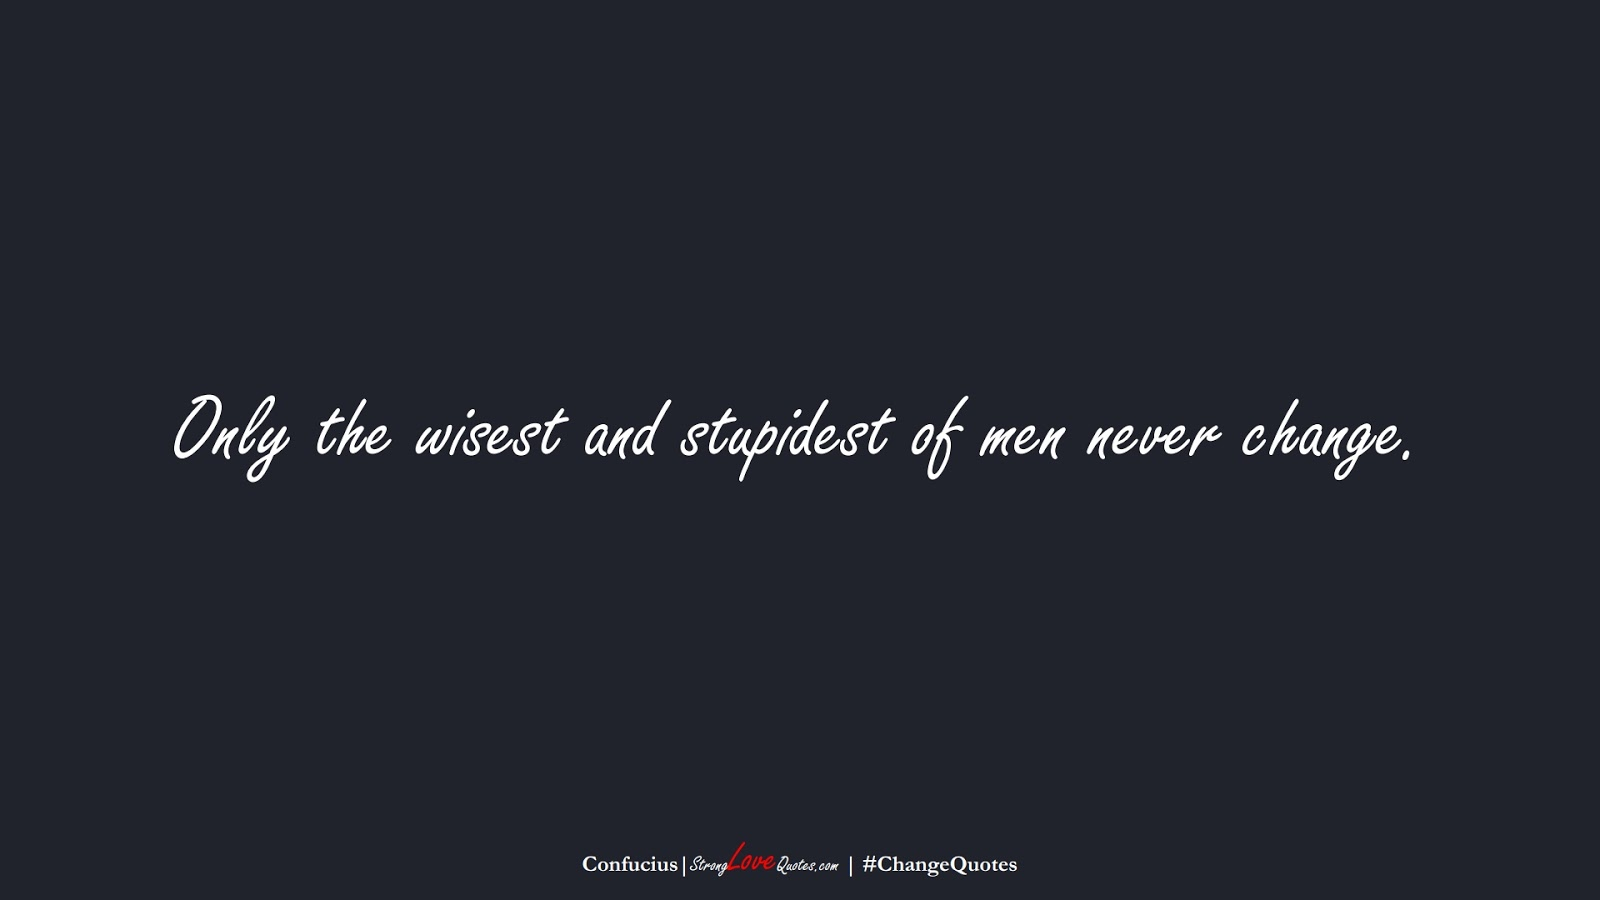 Only the wisest and stupidest of men never change. (Confucius);  #ChangeQuotes